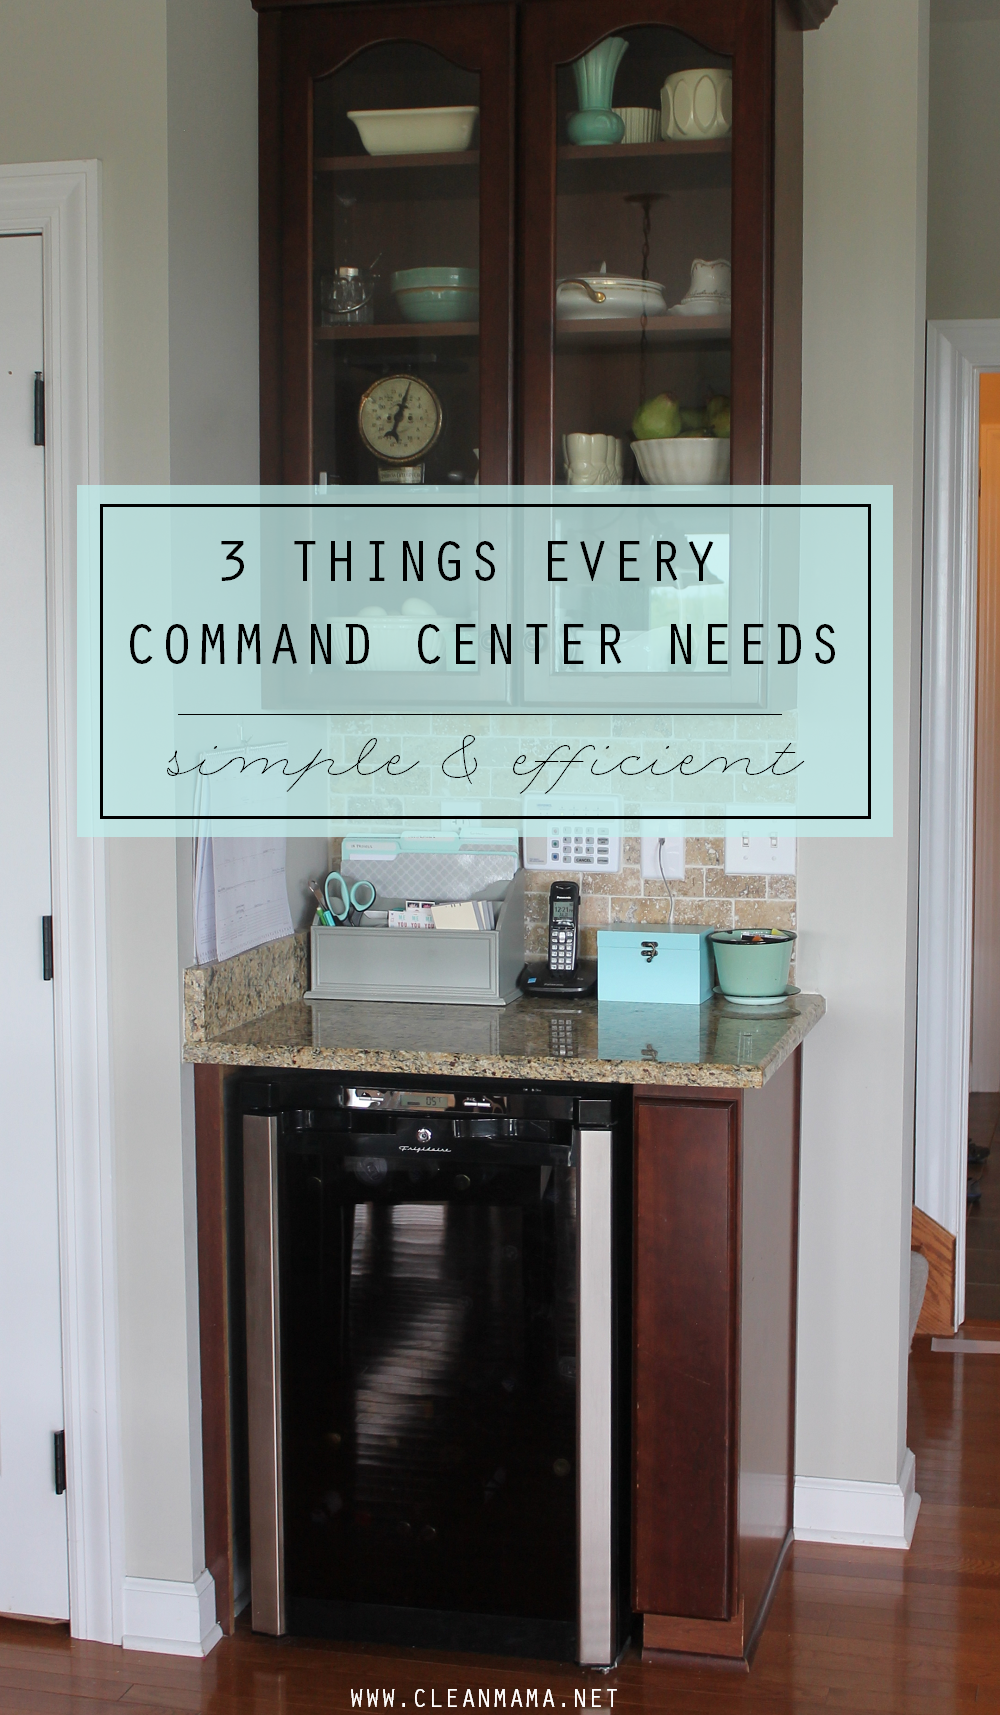 3 Things Every Command Center Needs - Clean Mama